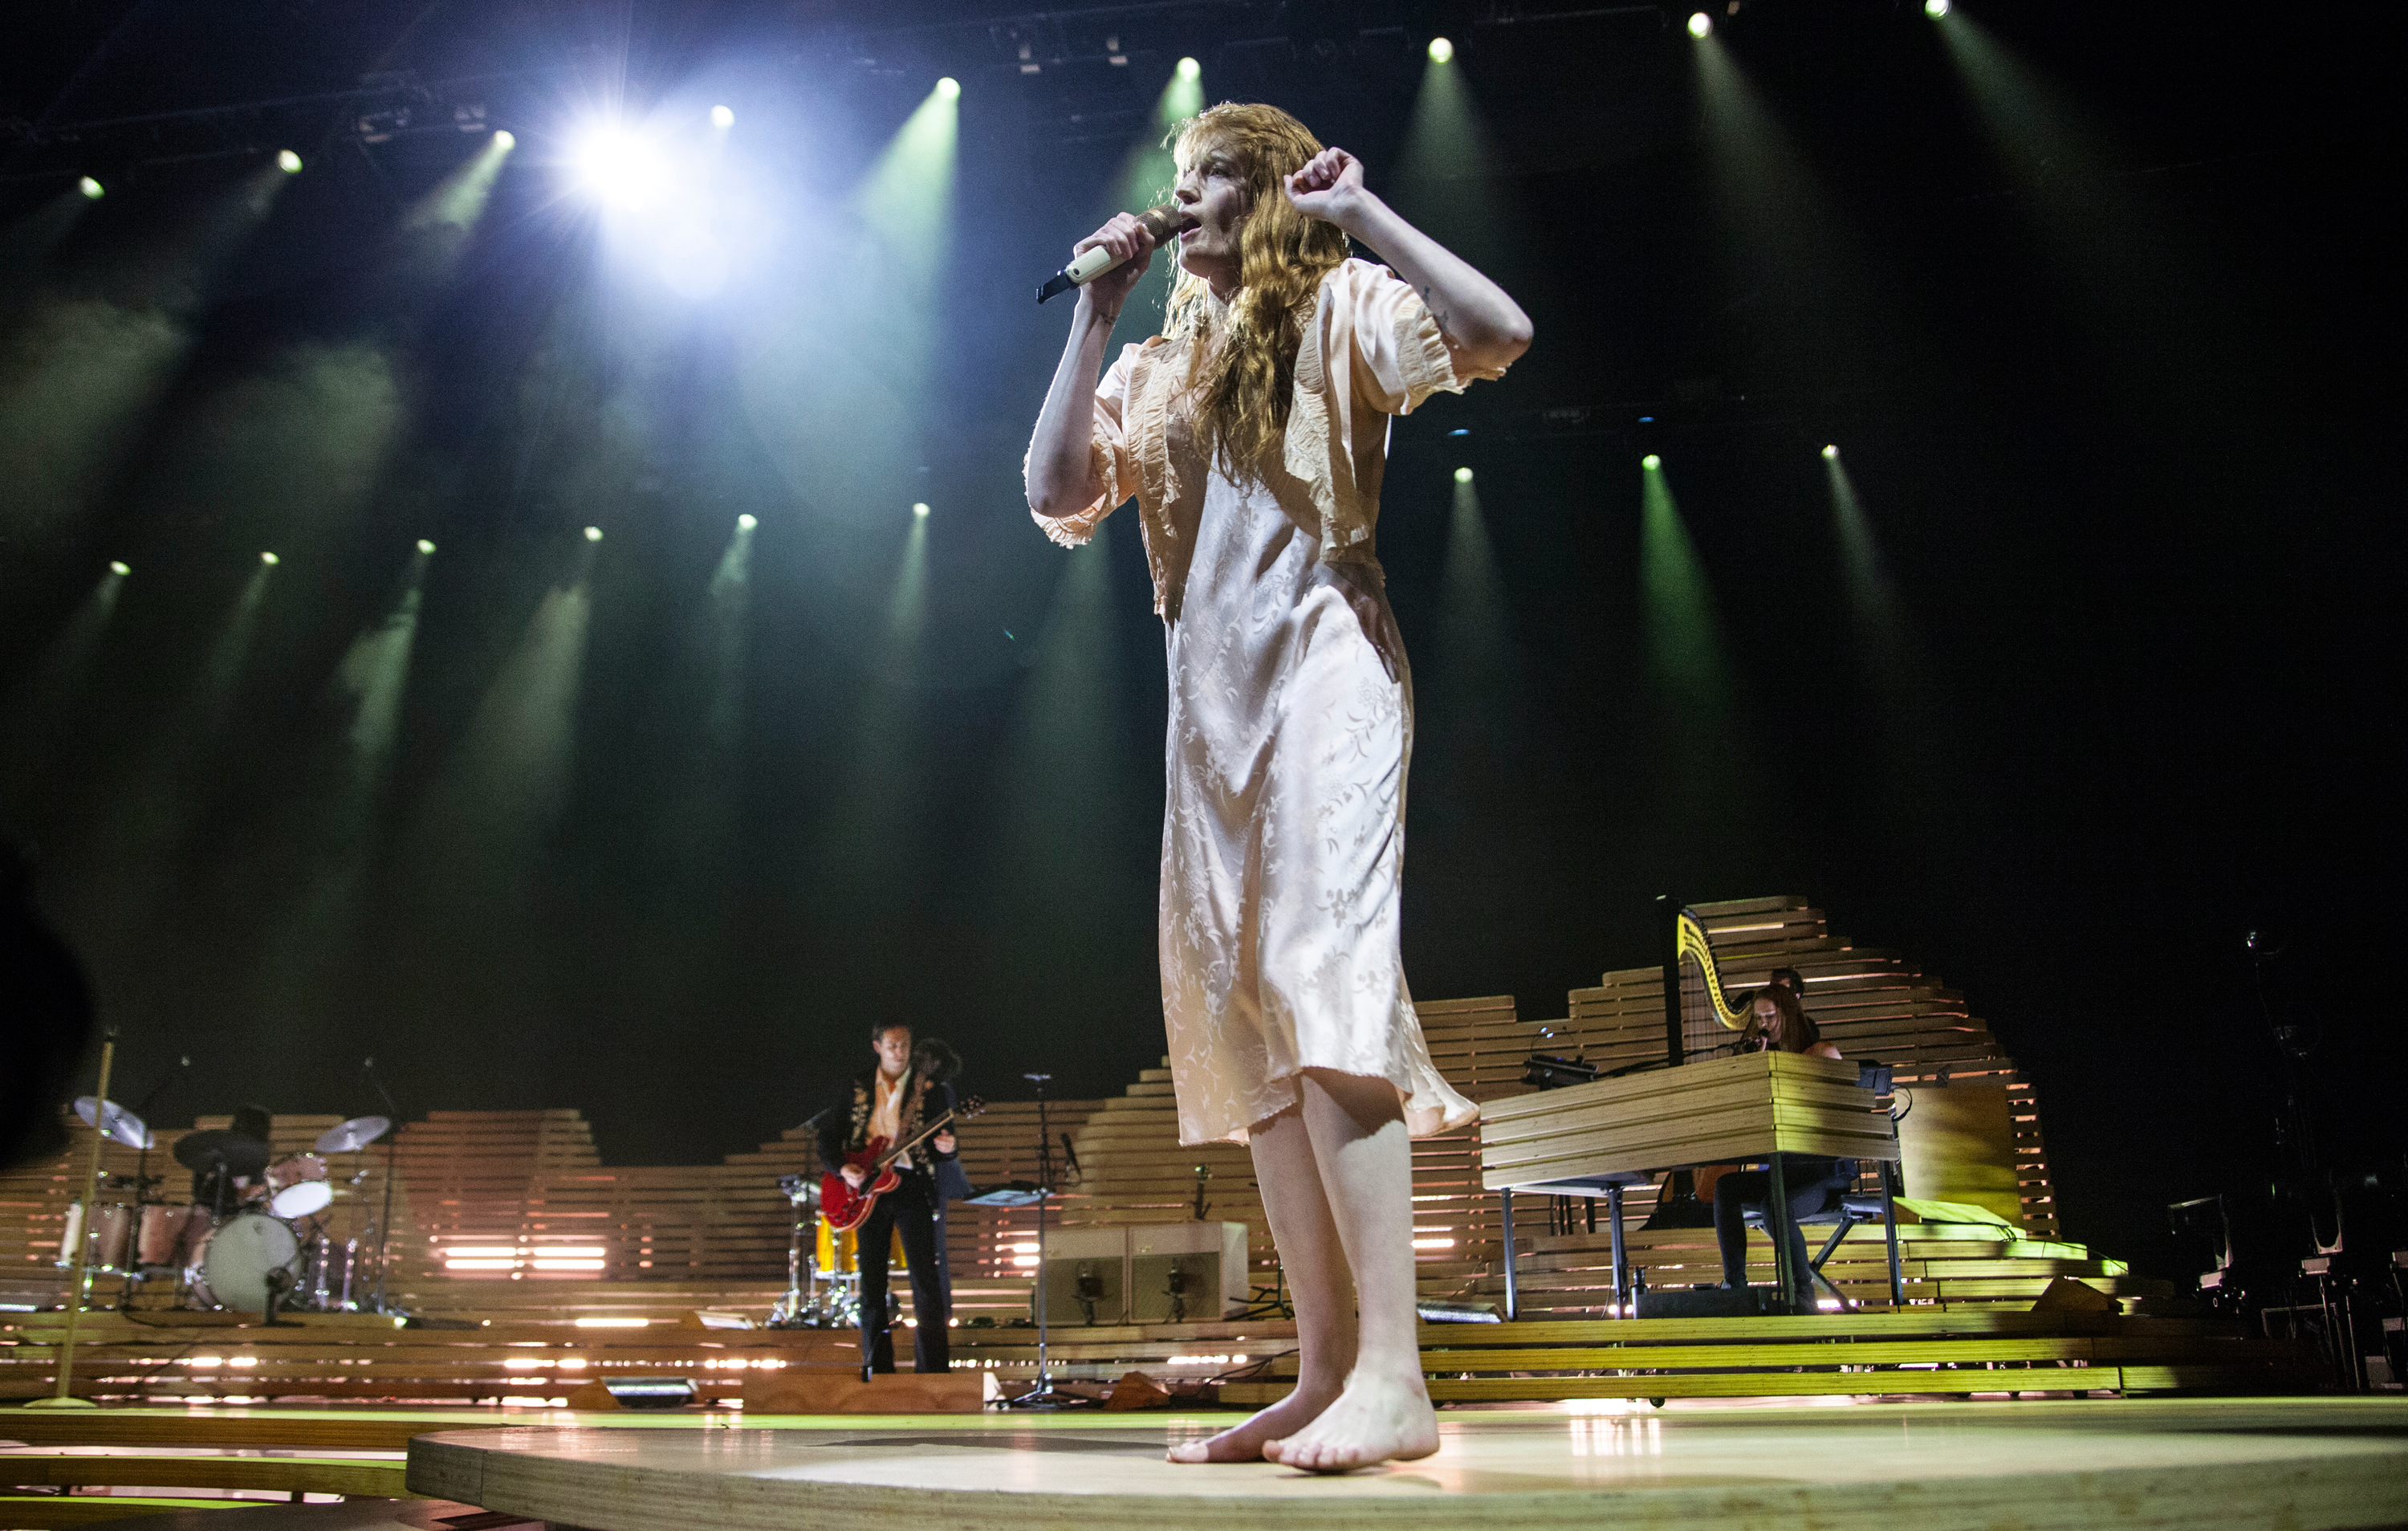 CHARLOTTE, NC - OCTOBER 03: Singer Florence Welch of Florence and the Machine performs at Spectrum Center on October 3, 2018 in Charlotte, North Carolina. (Photo by Jeff Hahne/Getty Images)